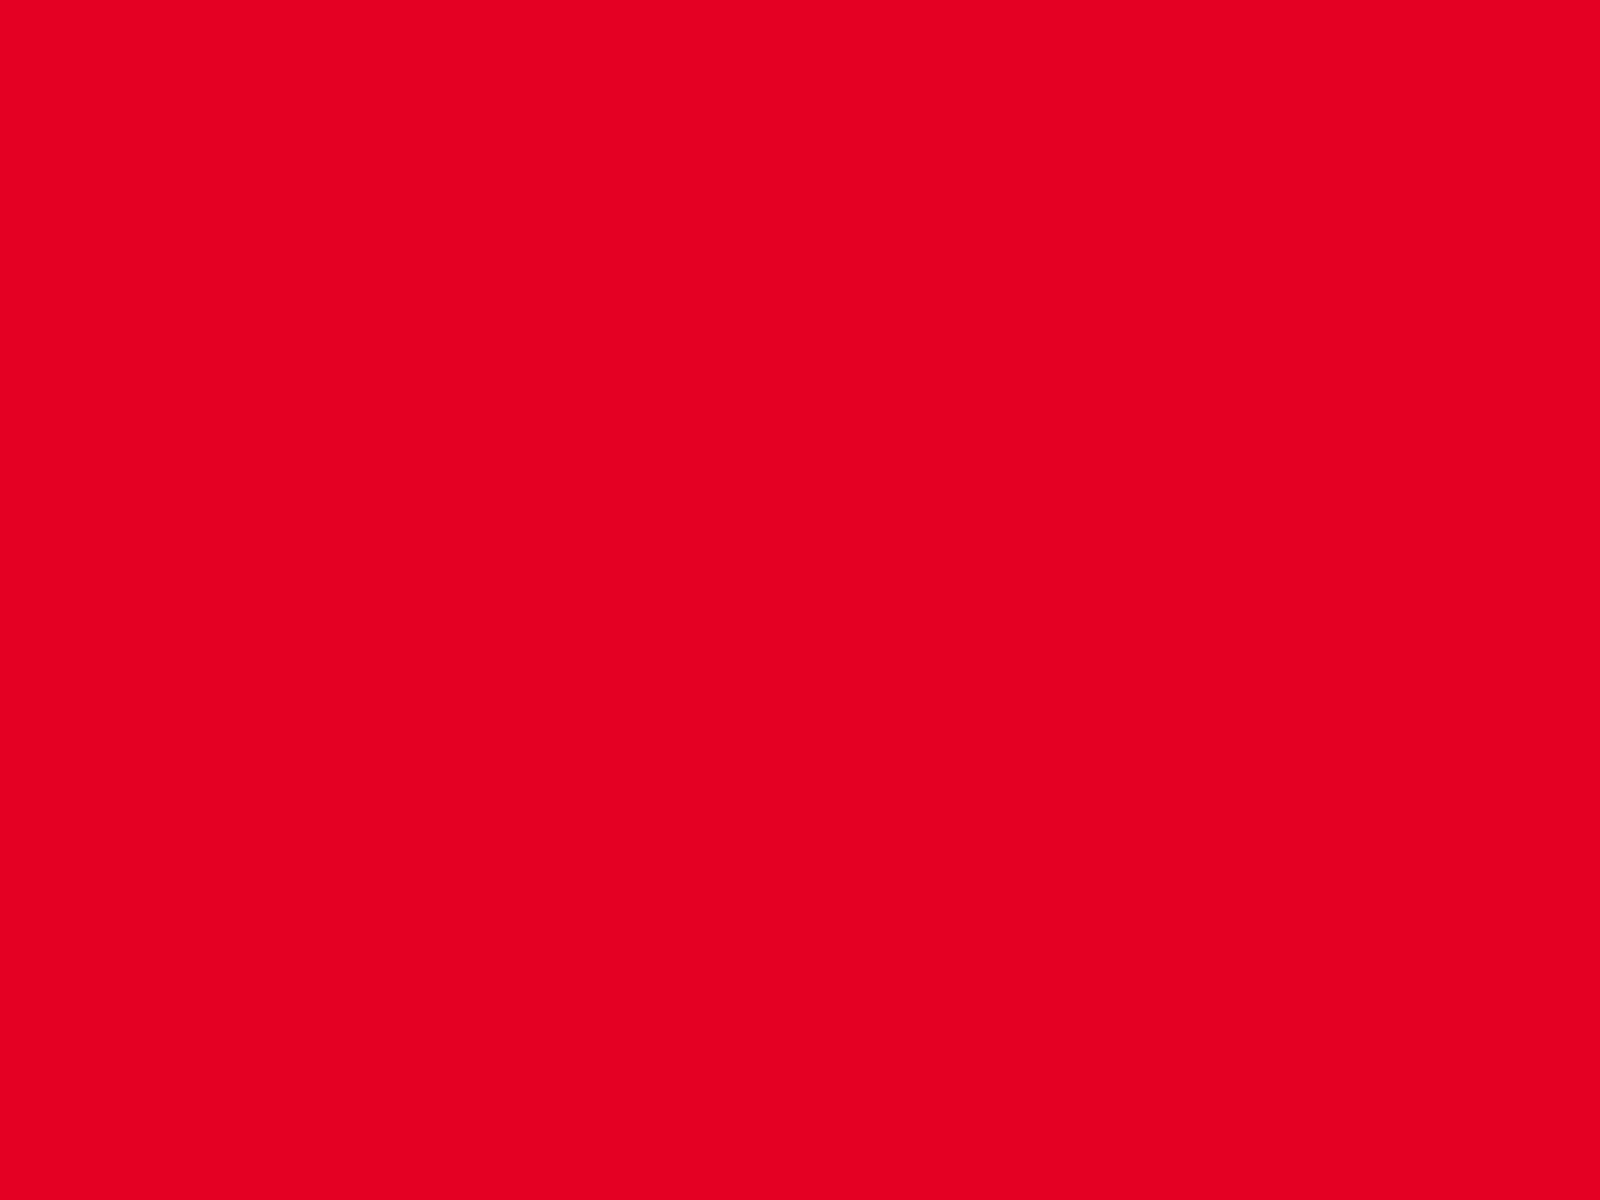 1600x1200 Cadmium Red Solid Color Background